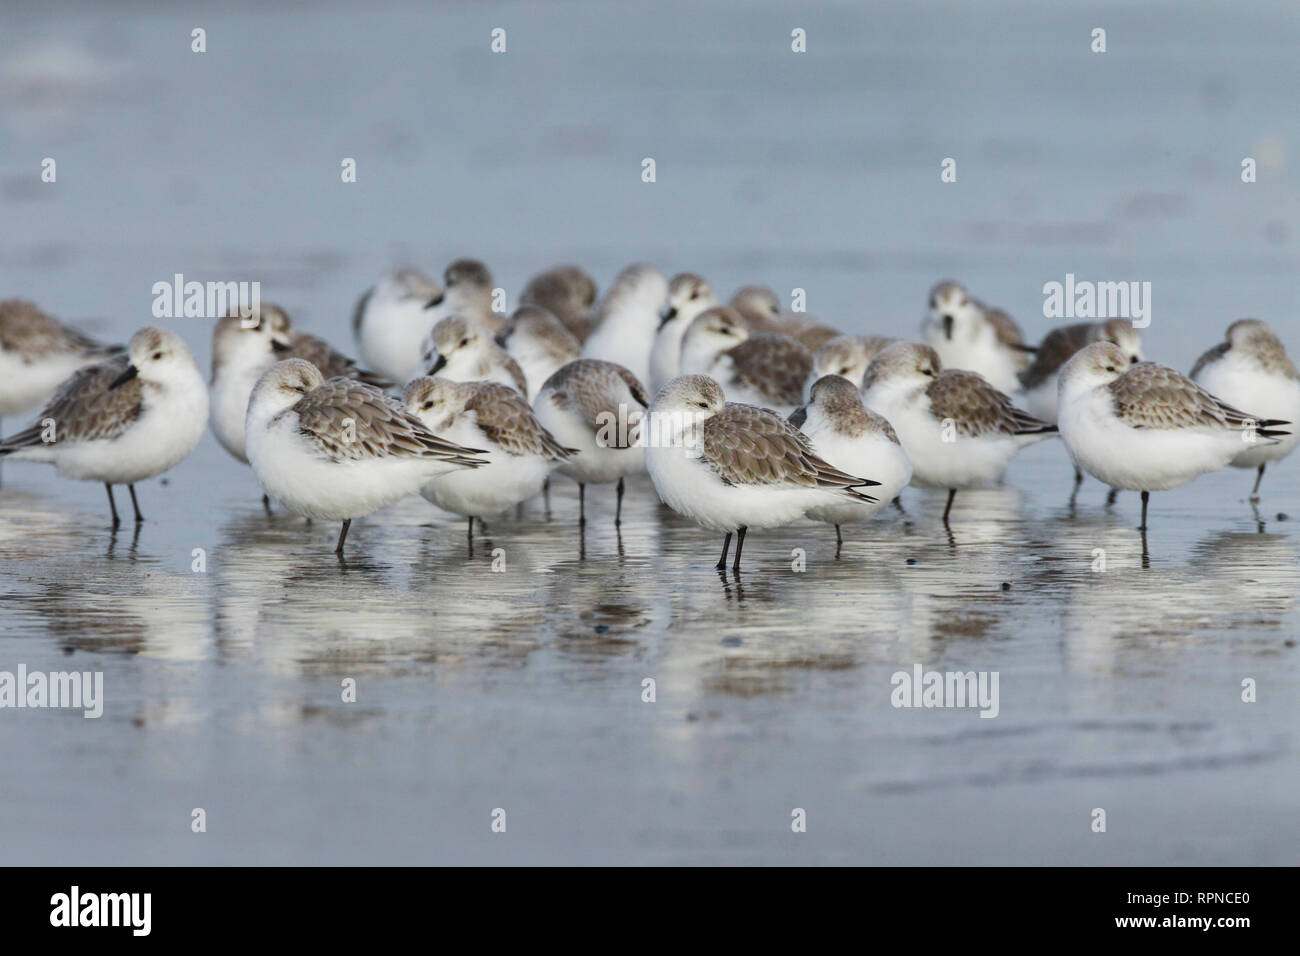 zoology / animals, avian / bird (aves), Sanderling, Calidris alba, Germany, Additional-Rights-Clearance-Info-Not-Available - Stock Image